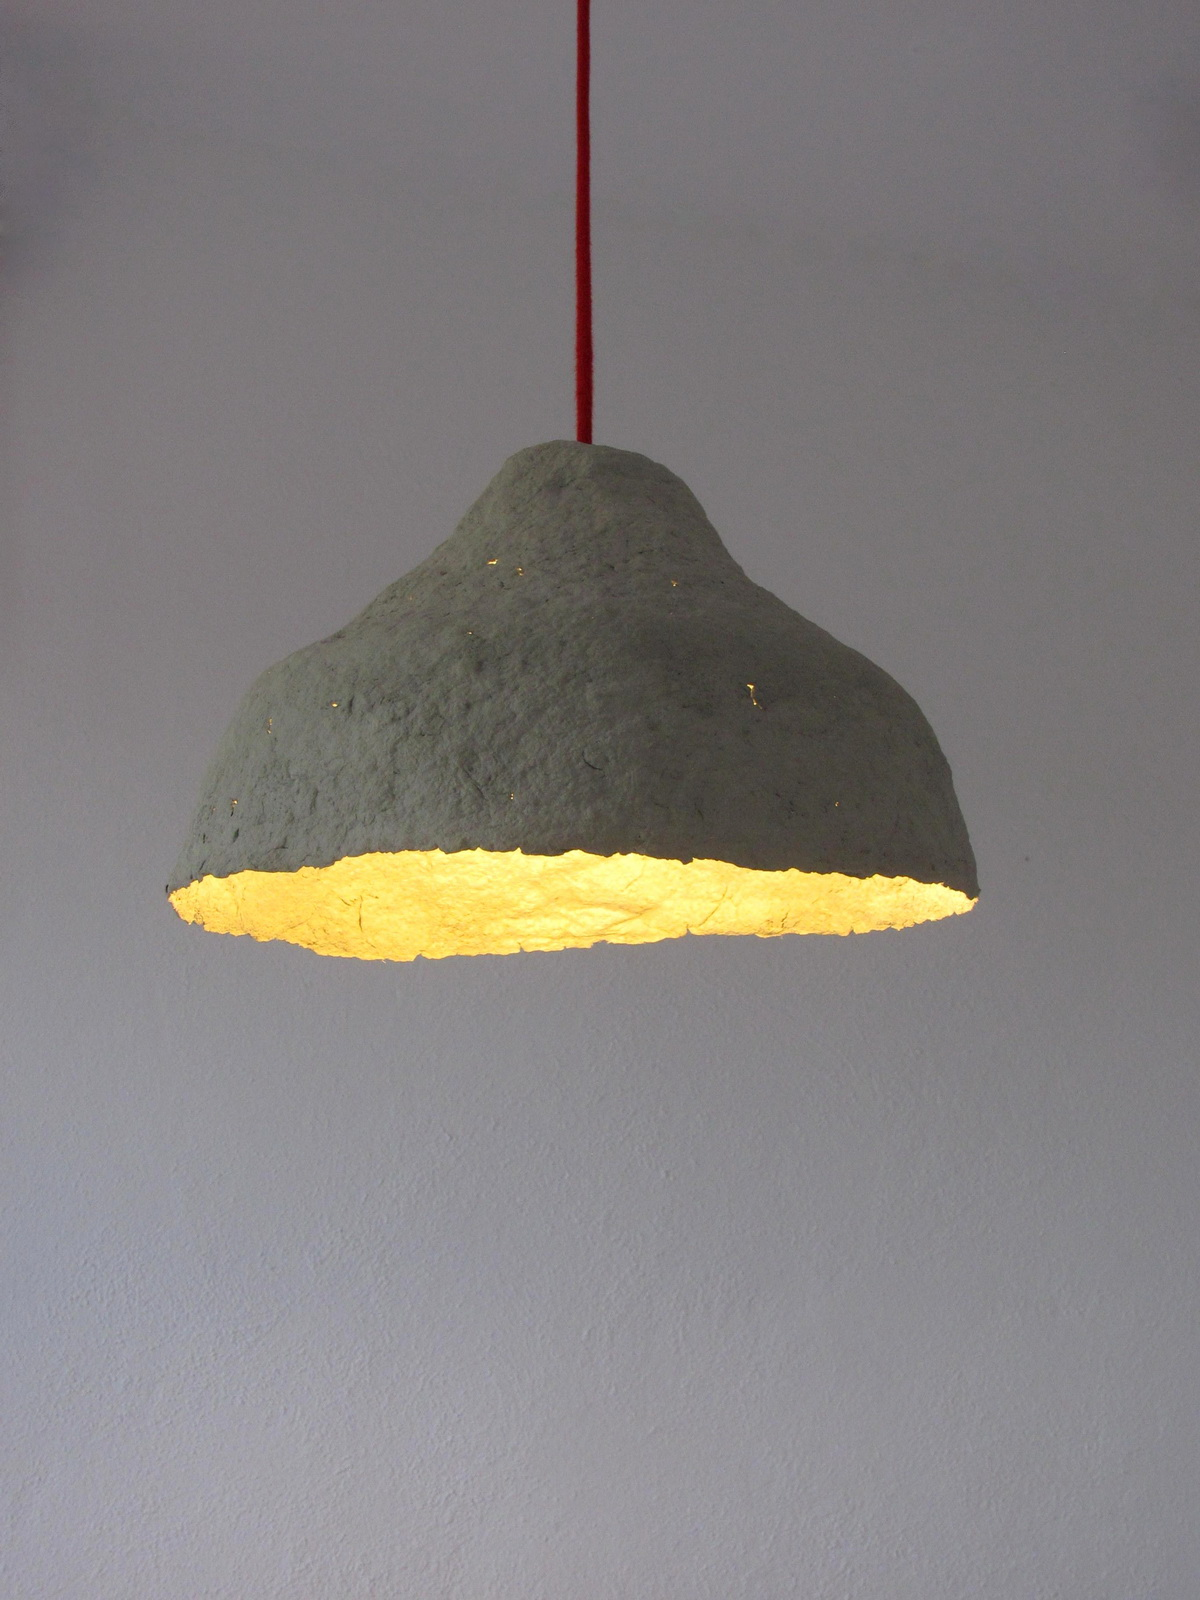 recycled_paper_pulp_lamp_vaseIII_2_resize